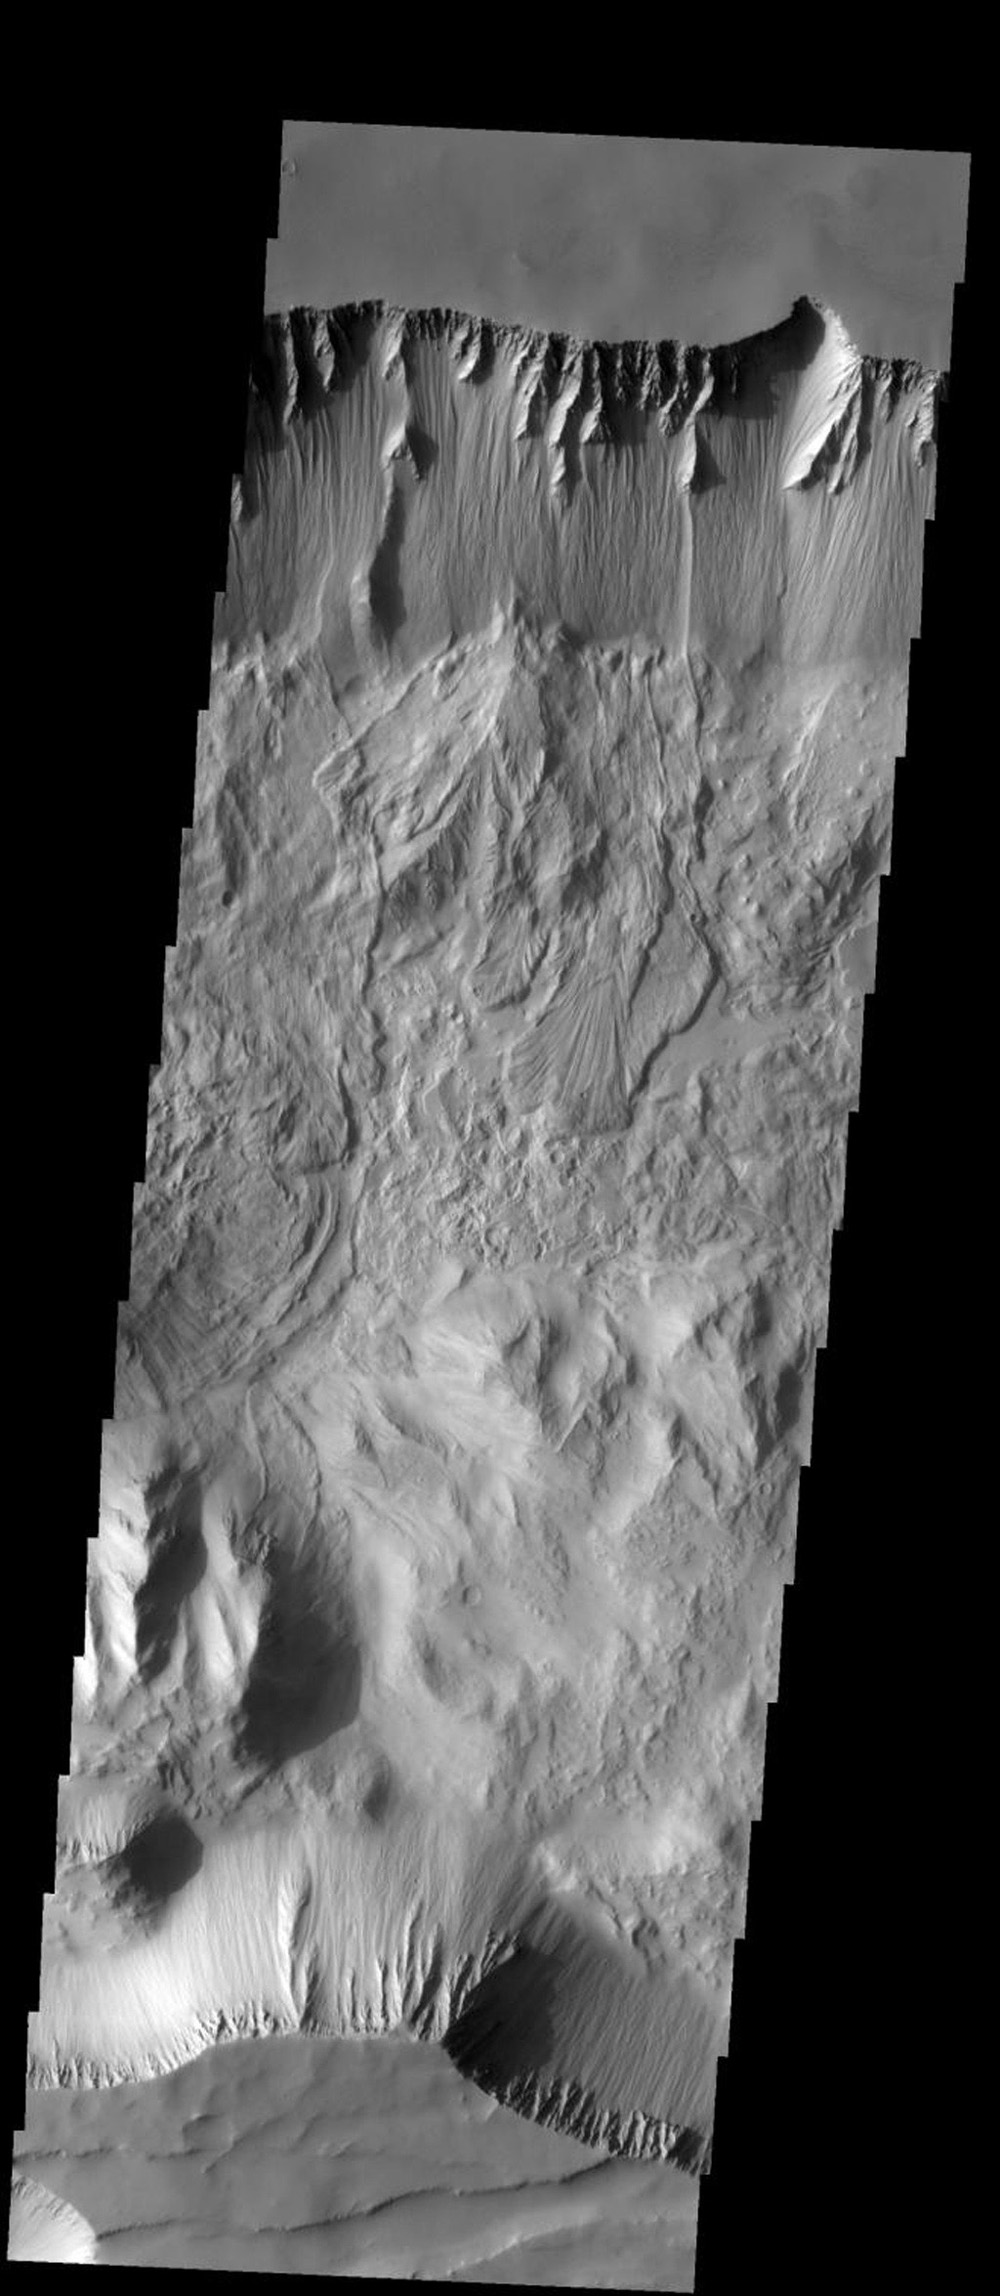 Several landslides are visible in this image of Thithomium Chasma on Mars as seen by NASA's Mars Odyssey spacecraft.